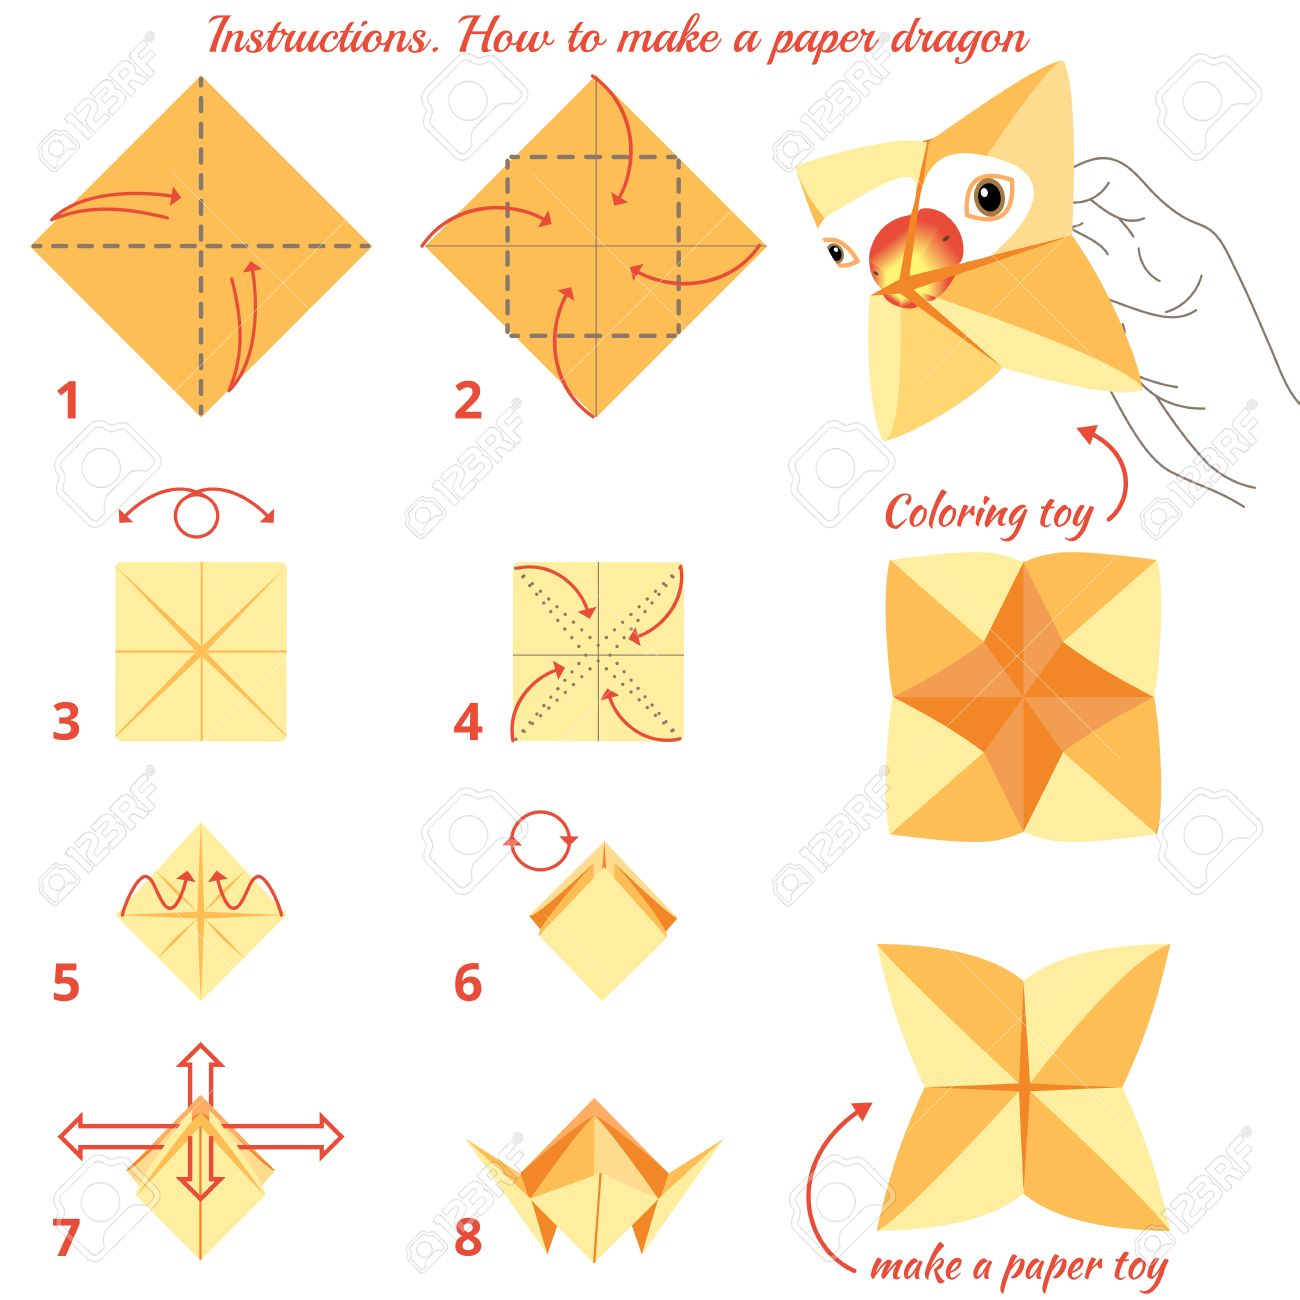 How To Make An Origami Bird - 1 - Folding Instructions - Origami Guide | 1300x1300